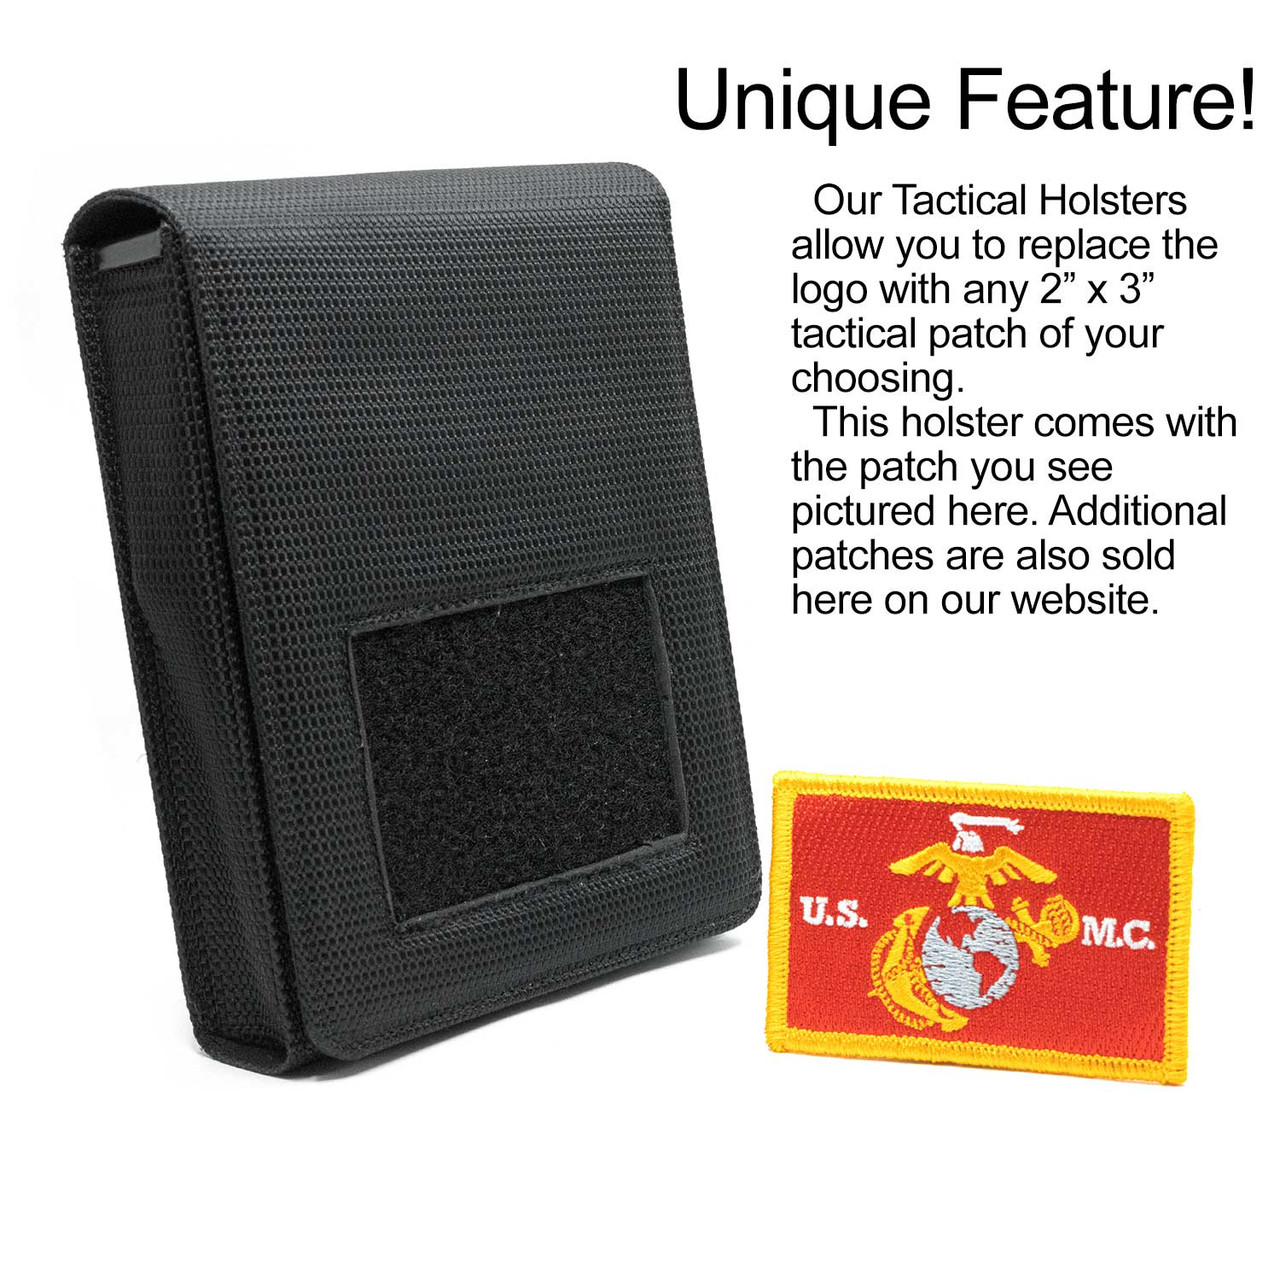 Taurus G3 Marine Corps Tactical Patch Holster